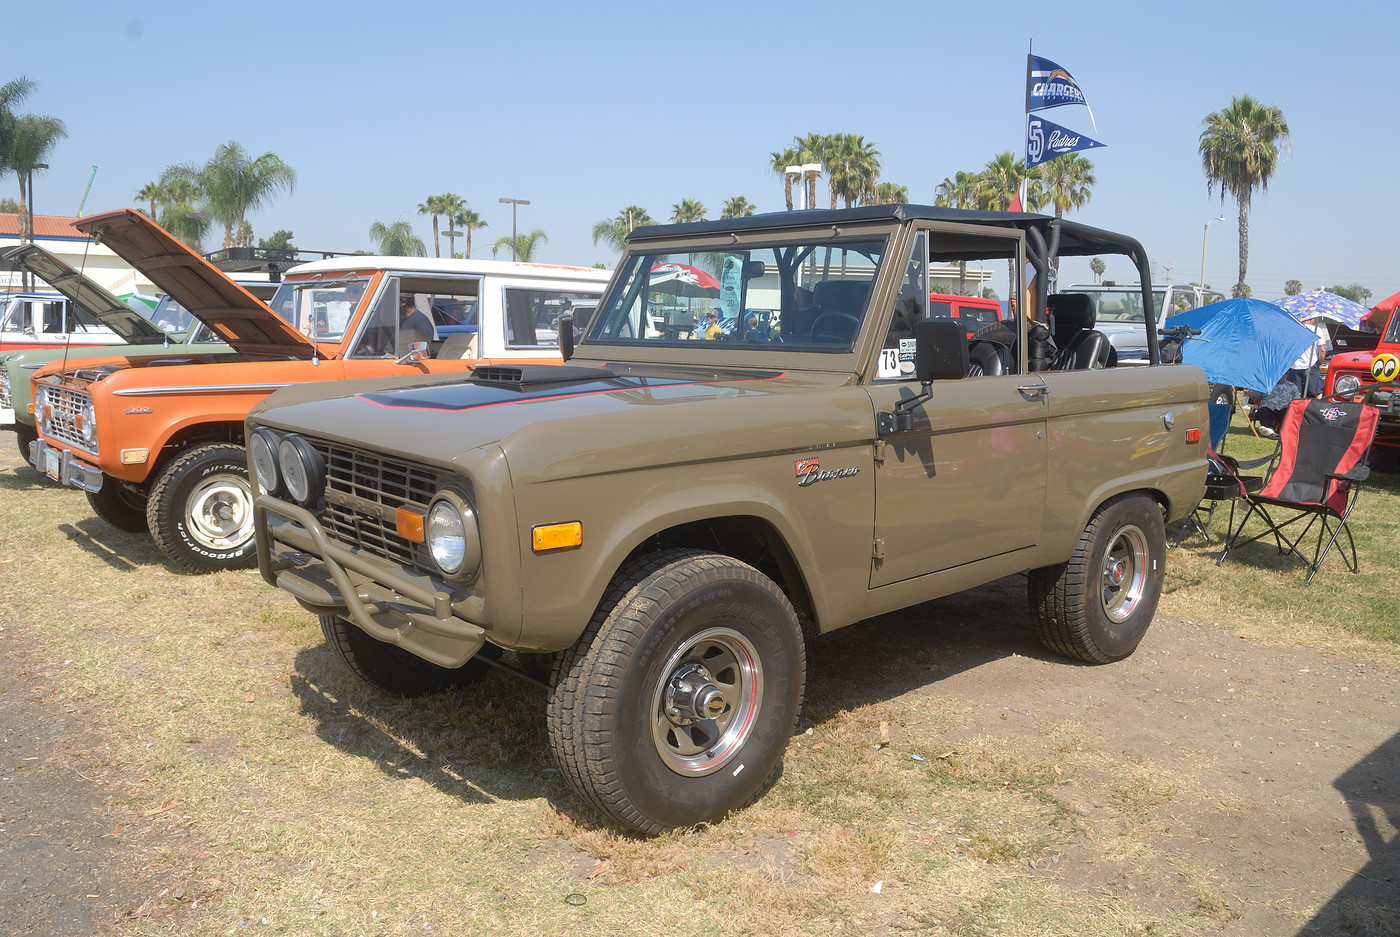 19XX Ford Bronco owned by Jason Sacco DSC 4843